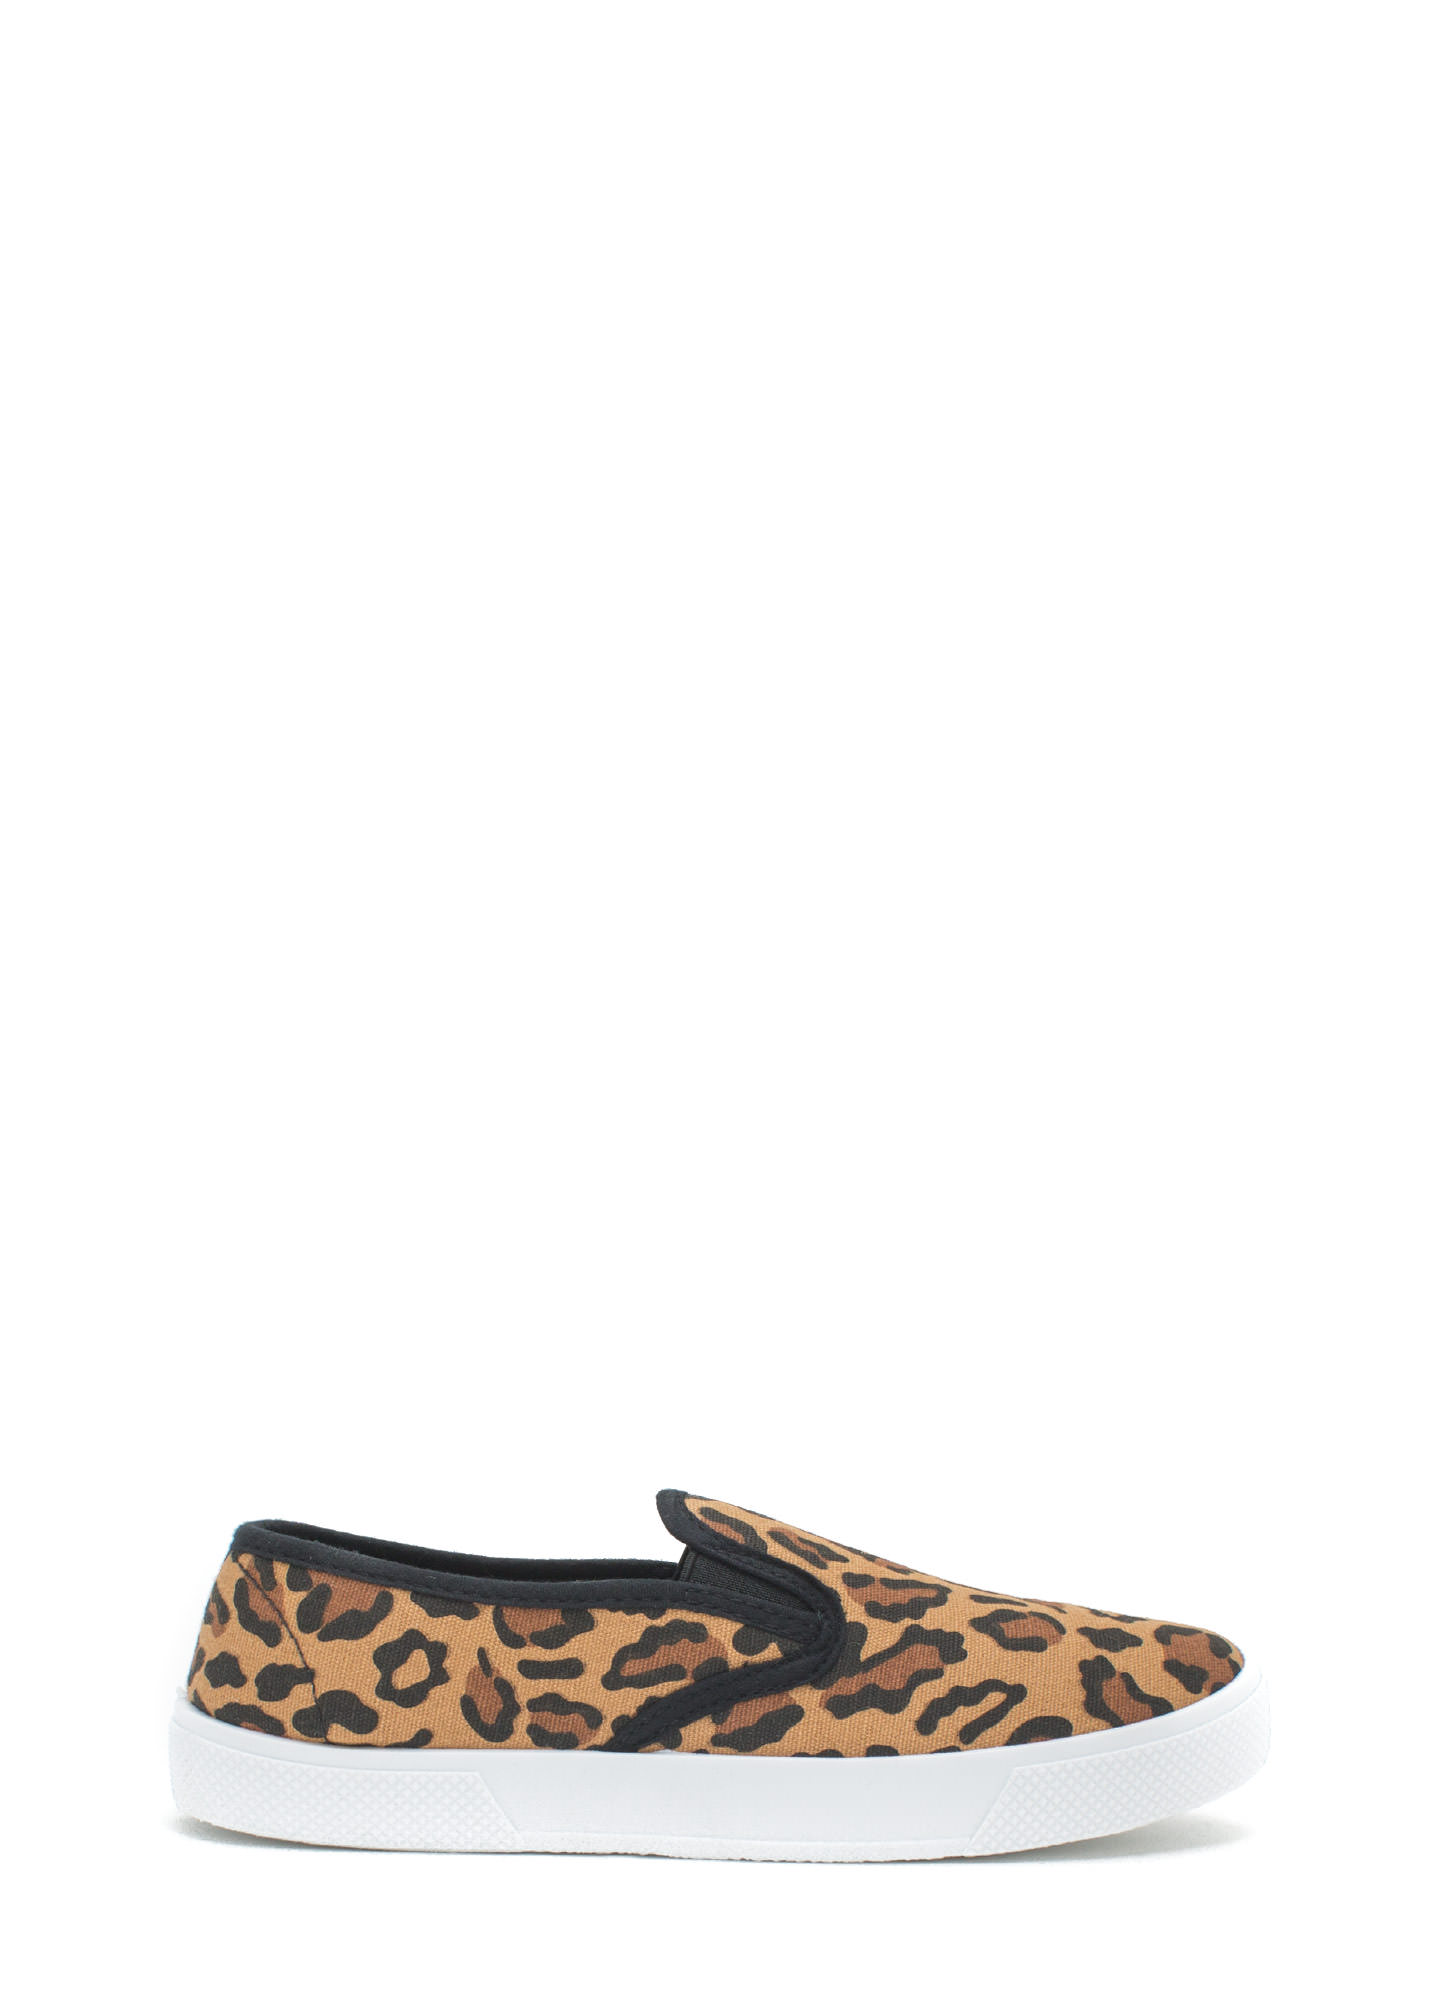 Let It Be Leopard Slip-On Sneakers LEOPARD